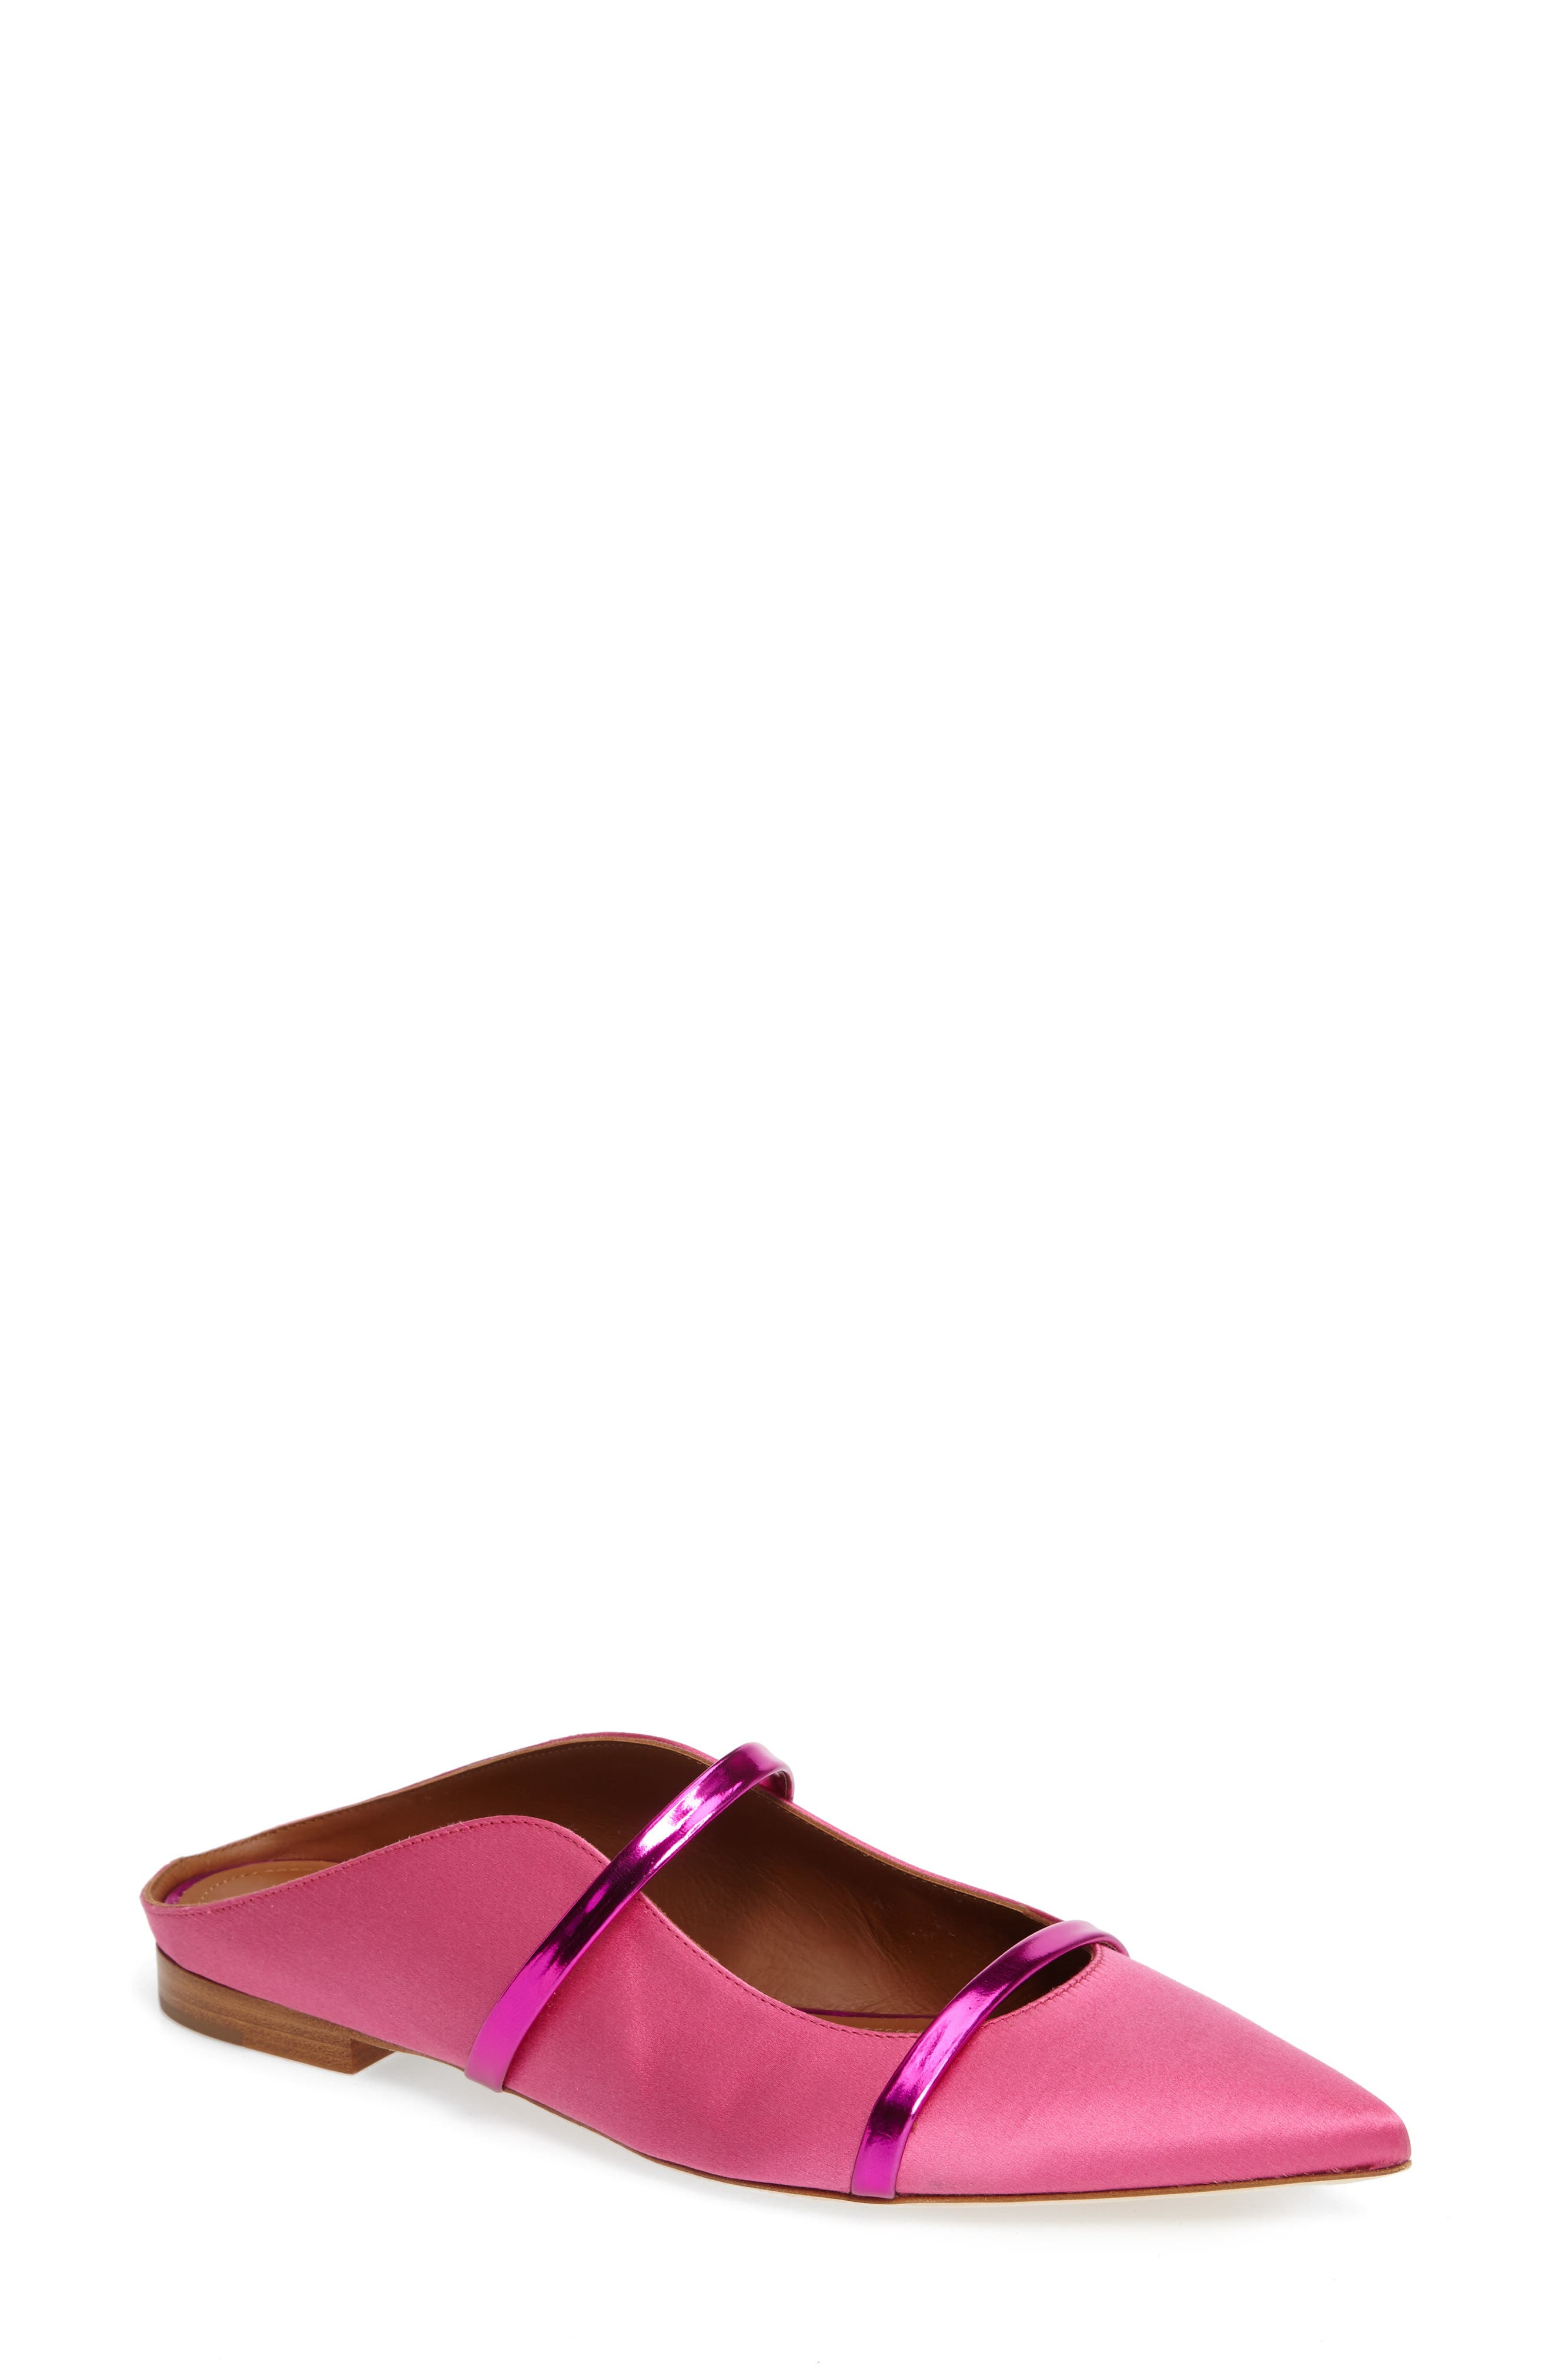 Alternate Image 1 Selected - Malone Souliers Maureen Pointy Toe Flat (Women)